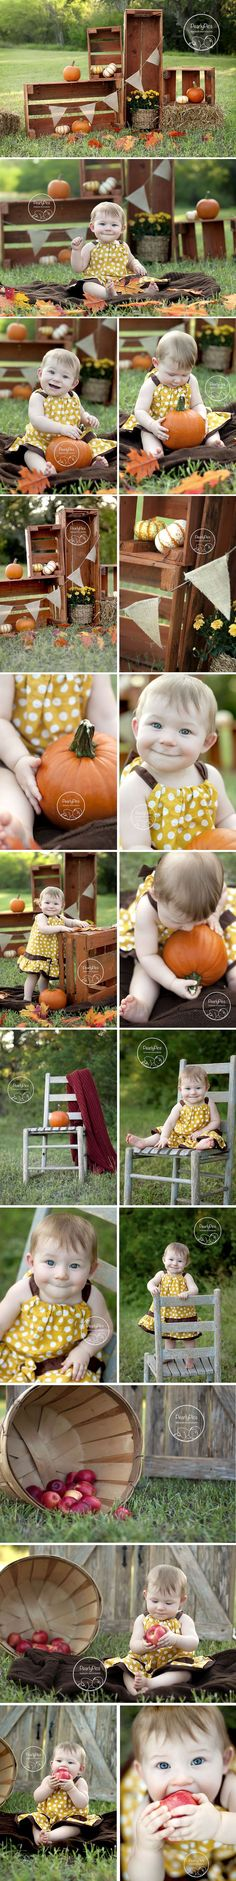 64 ideas photography props kids mini sessions crates The Effective Pictures We Offer You About kids Photography Props Kids, Photography Mini Sessions, Halloween Photography, Holiday Photography, Toddler Photography, Photography Backdrops, Newborn Photography, Photography Studios, Photography Marketing